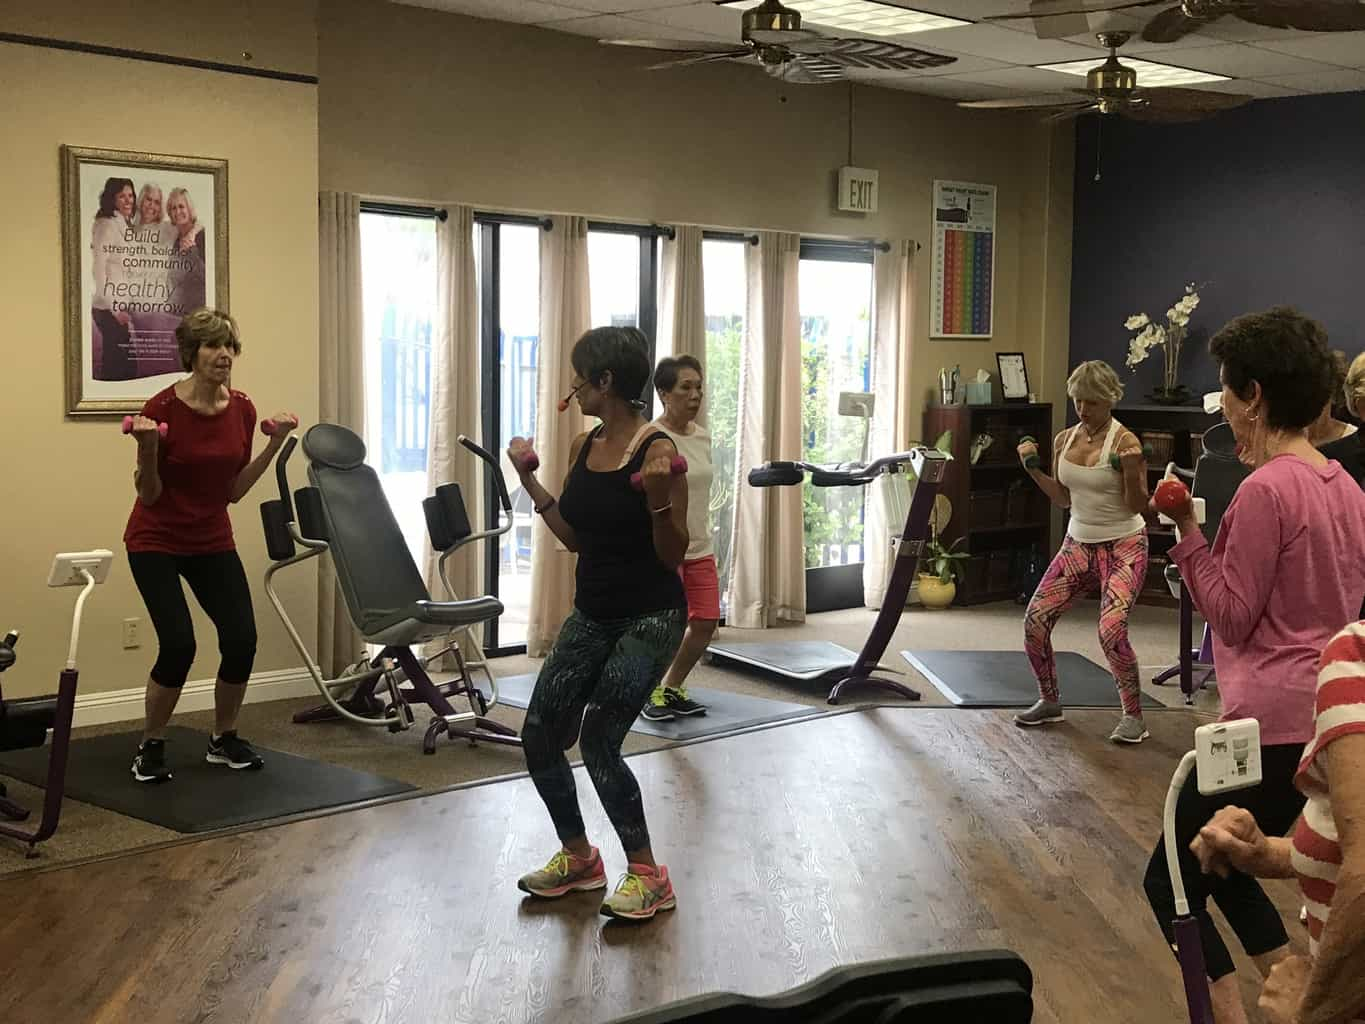 Did you know that exerciseis an important part of maintaining one's emotional health? Learn how exercise helps to improve your overall mood and mental clarity.